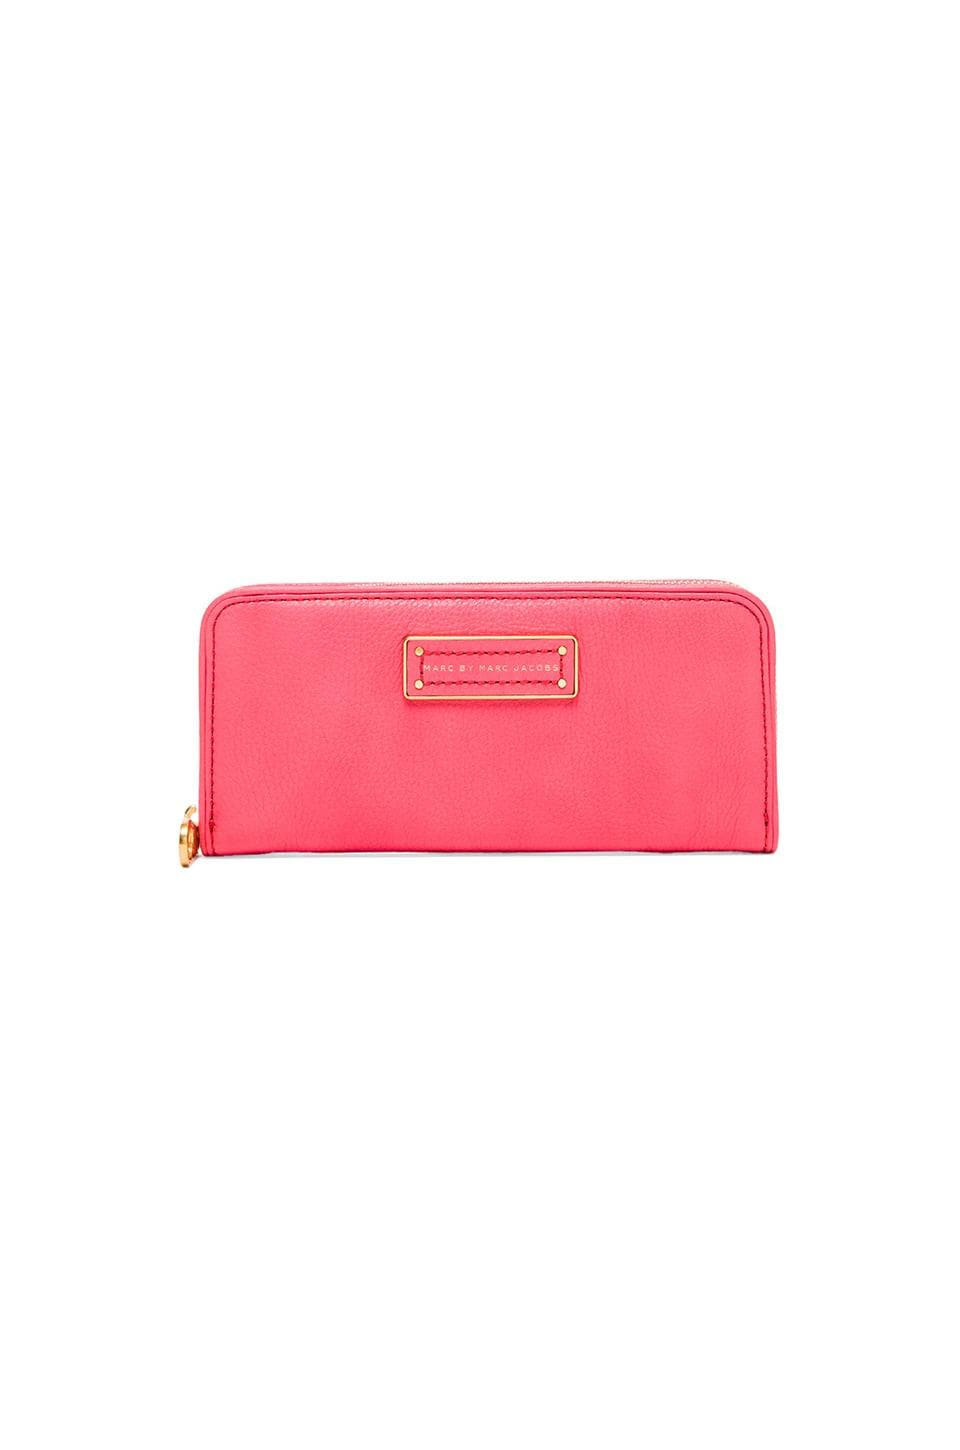 Marc by Marc Jacobs Too Hot to Handle Slim Zip Around in Bright Coral